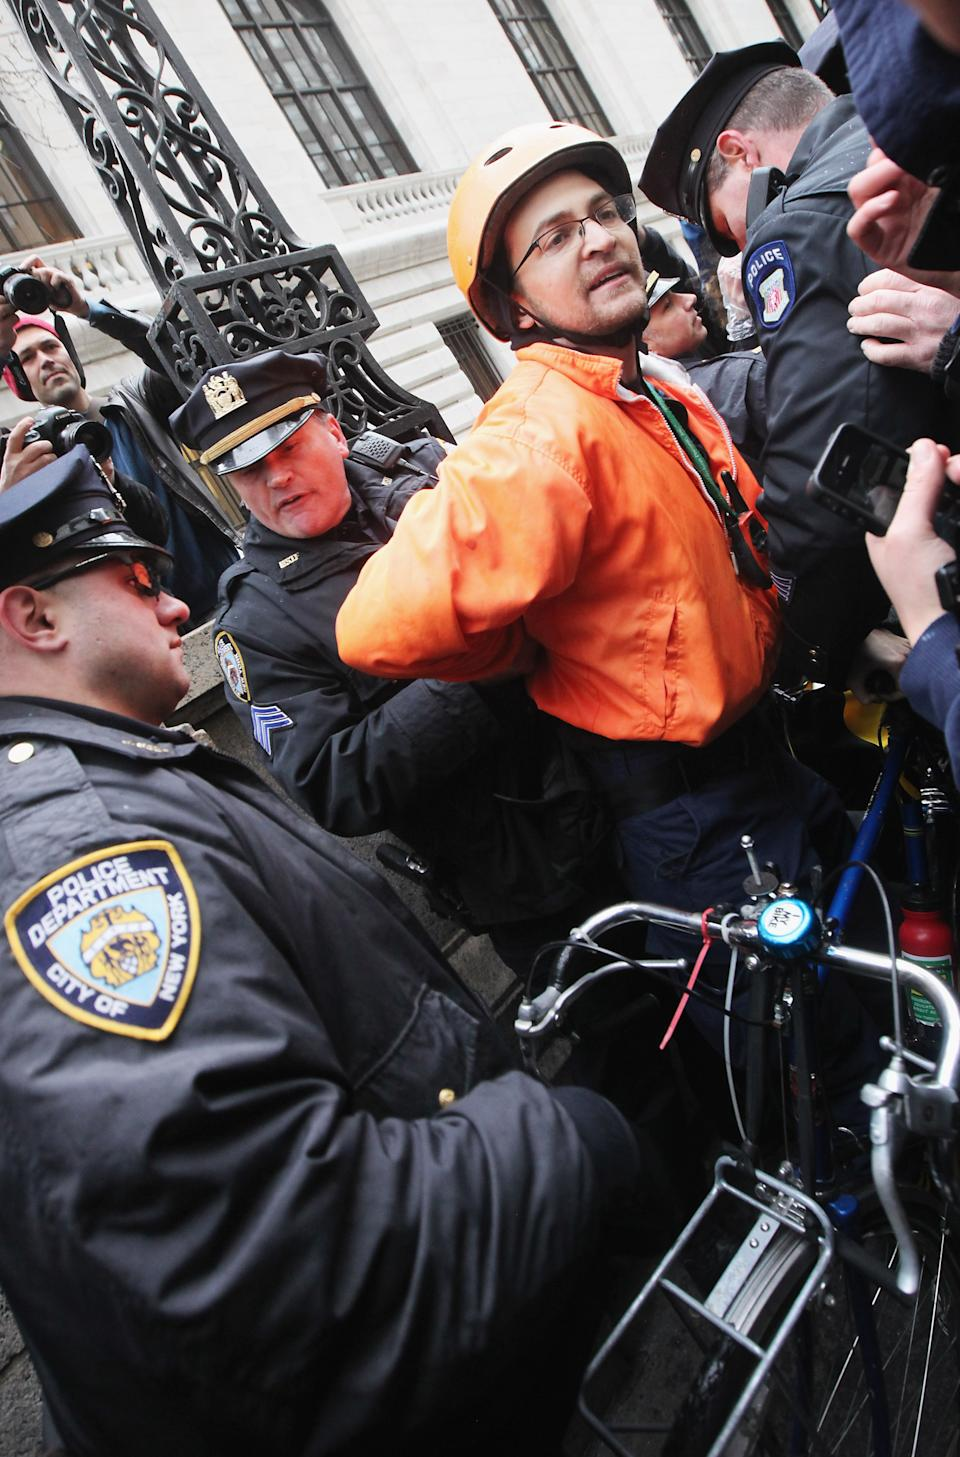 "NEW YORK, NY - FEBRUARY 29: A protester is arrested by NYPD during an Occupy Wall Street ""Shut Down the Corporations"" protest on February 29, 2012 in New York City. Occupy movements across the country are planning protests in dozens of cities against corporate power. (Photo by Mario Tama/Getty Images)"